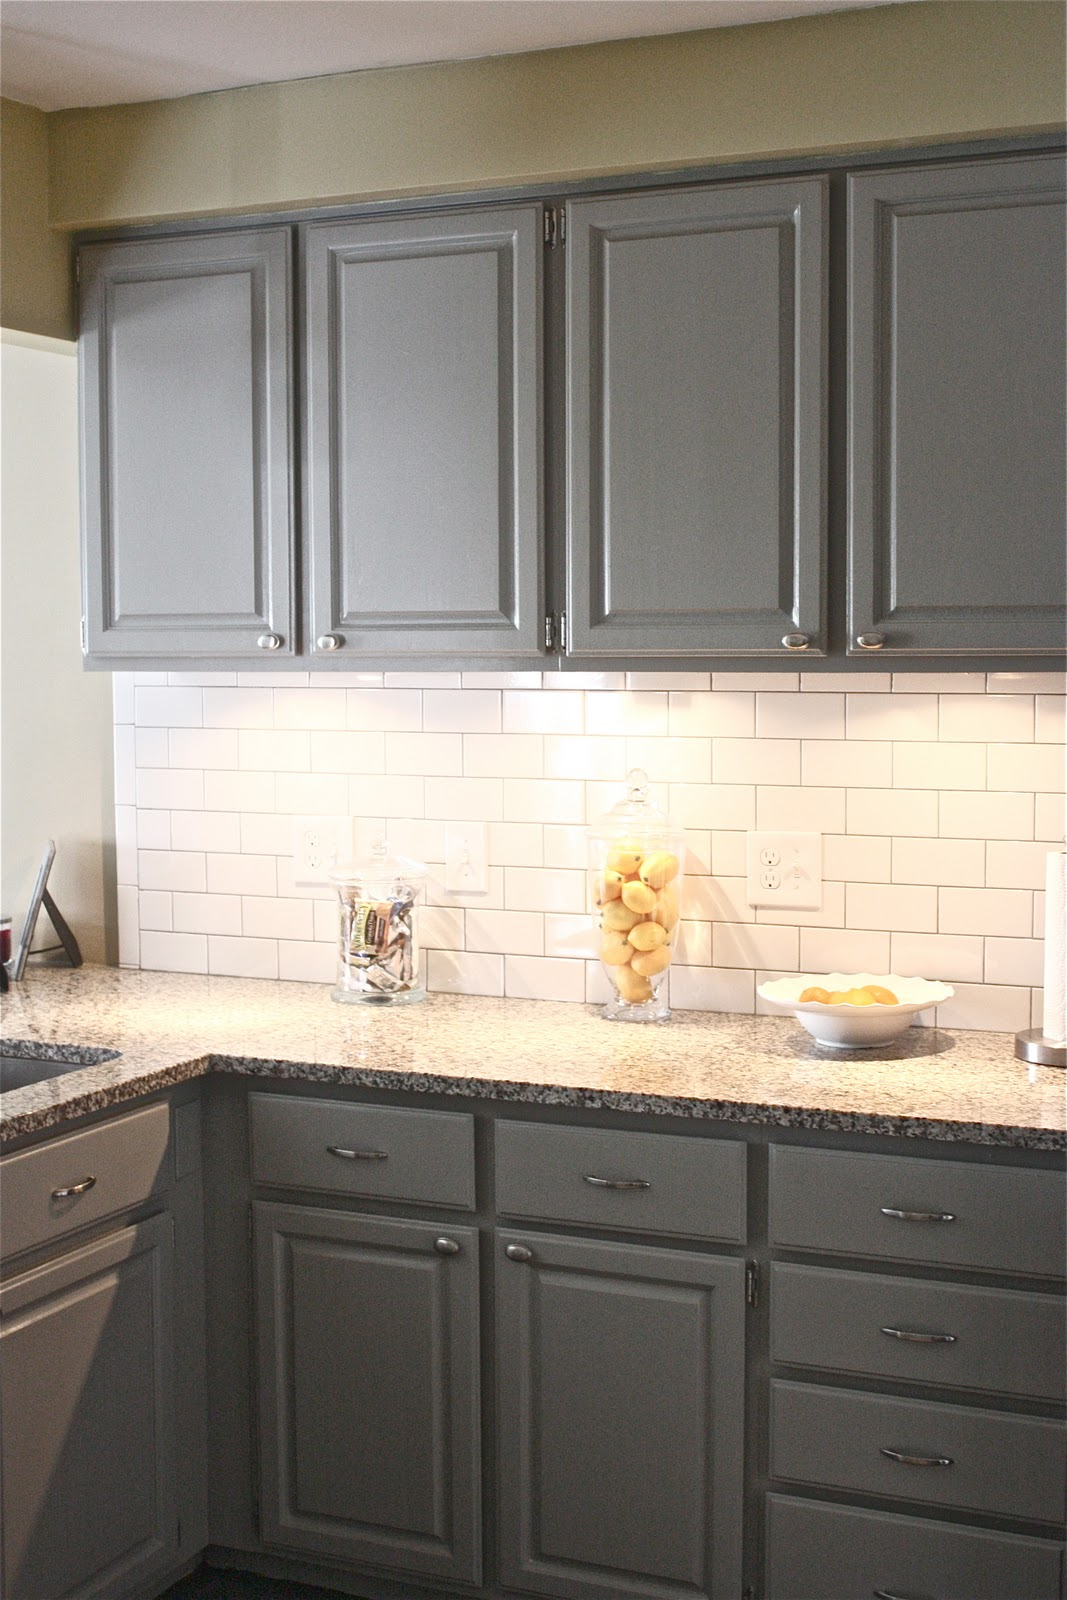 Grey Kitchen Cabinets Hide Away Trash Bin Black And Cream Floor Tiles Best Home